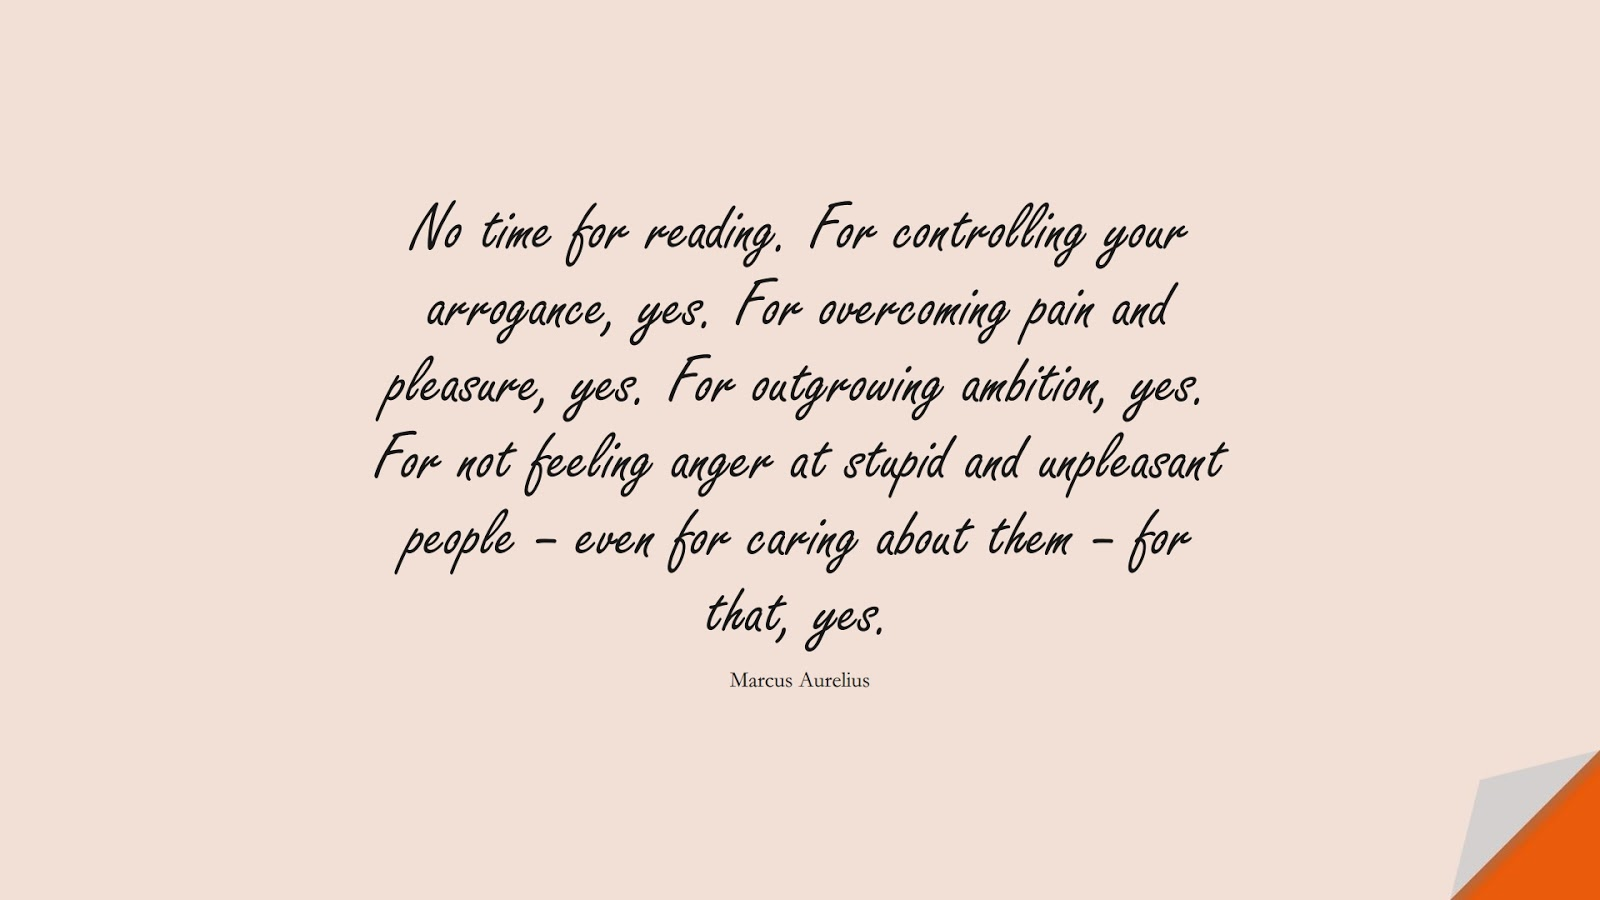 No time for reading. For controlling your arrogance, yes. For overcoming pain and pleasure, yes. For outgrowing ambition, yes. For not feeling anger at stupid and unpleasant people – even for caring about them – for that, yes. (Marcus Aurelius);  #MarcusAureliusQuotes